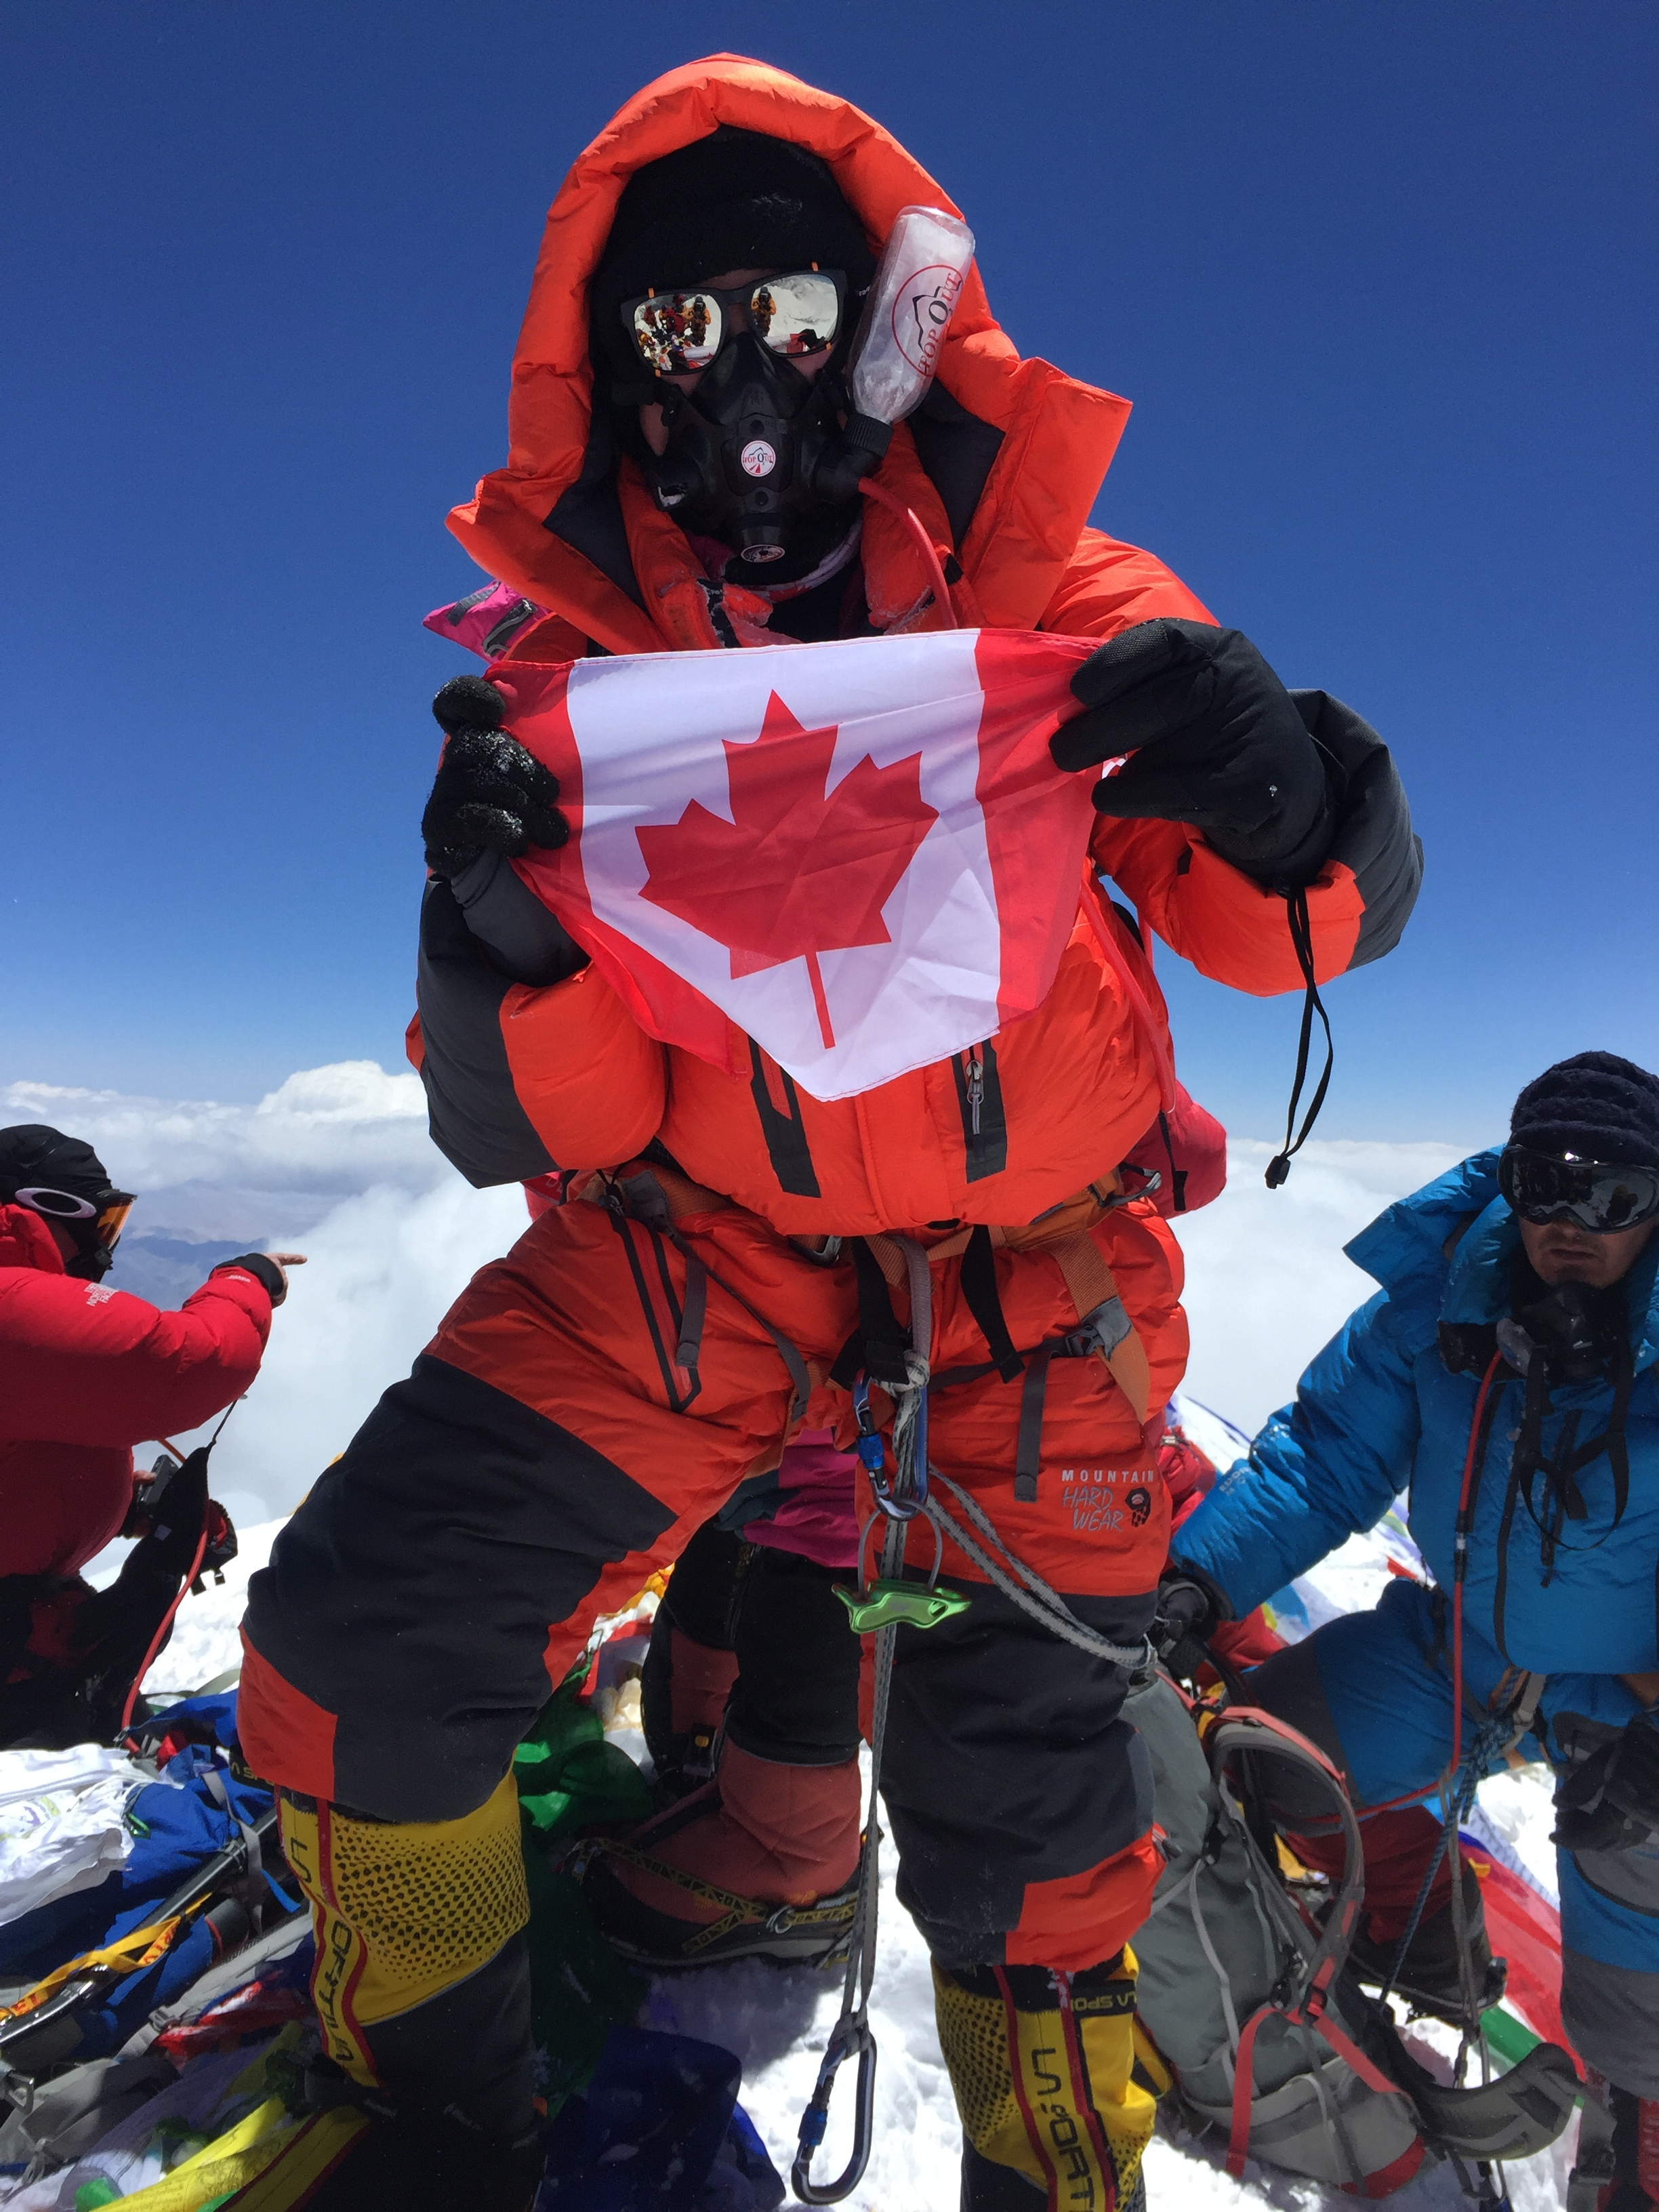 Everest - Location: AsiaHeight: 29,029 ft / 8,848 mSummit Date: May 23rd, 2016Route: North (Tibet)Trip Length: 2 monthsCompany: Tag Nepal